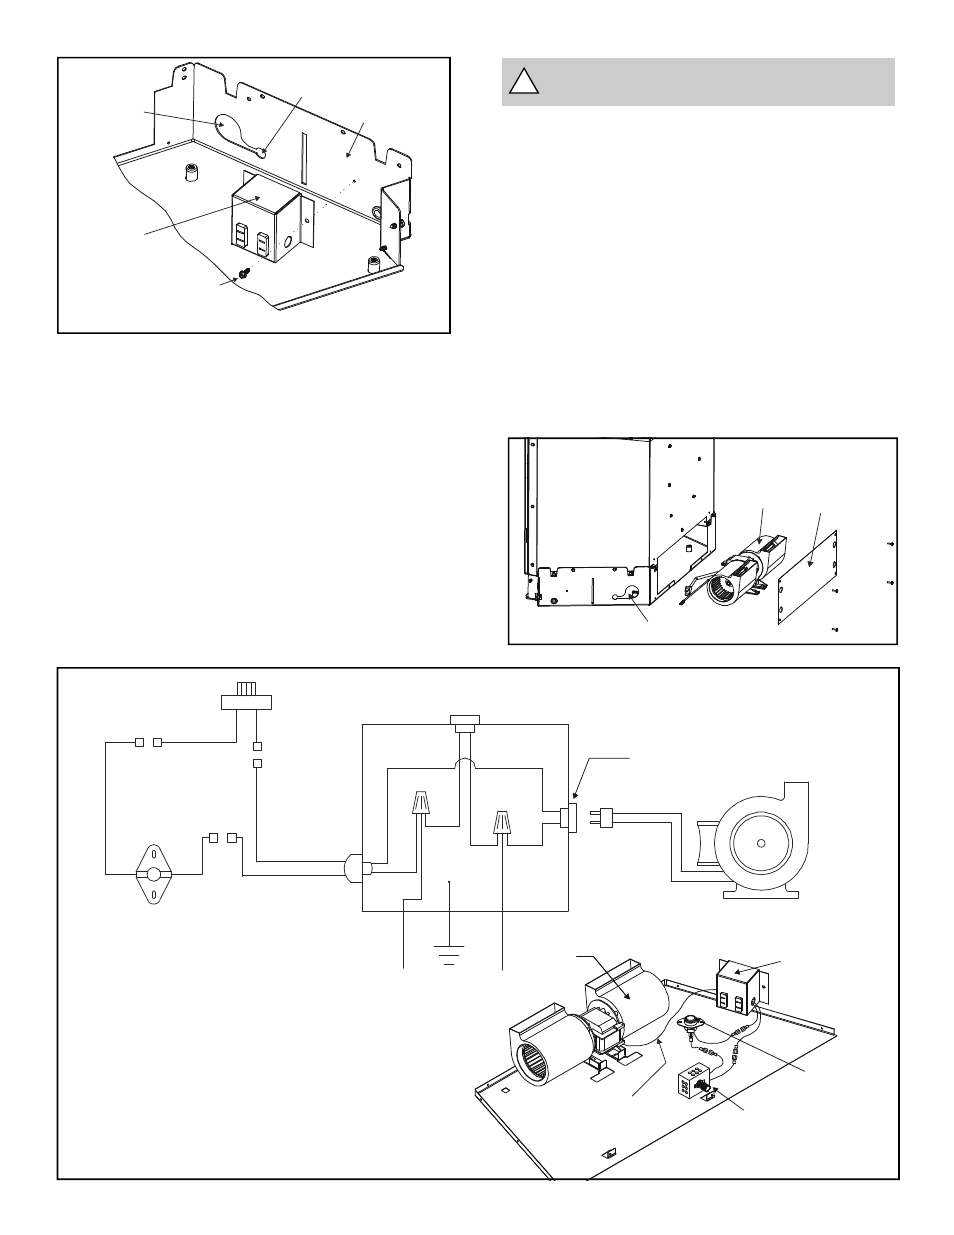 figure 10 fan wiring diagram warning must use the cord supplied rh manualsdir com